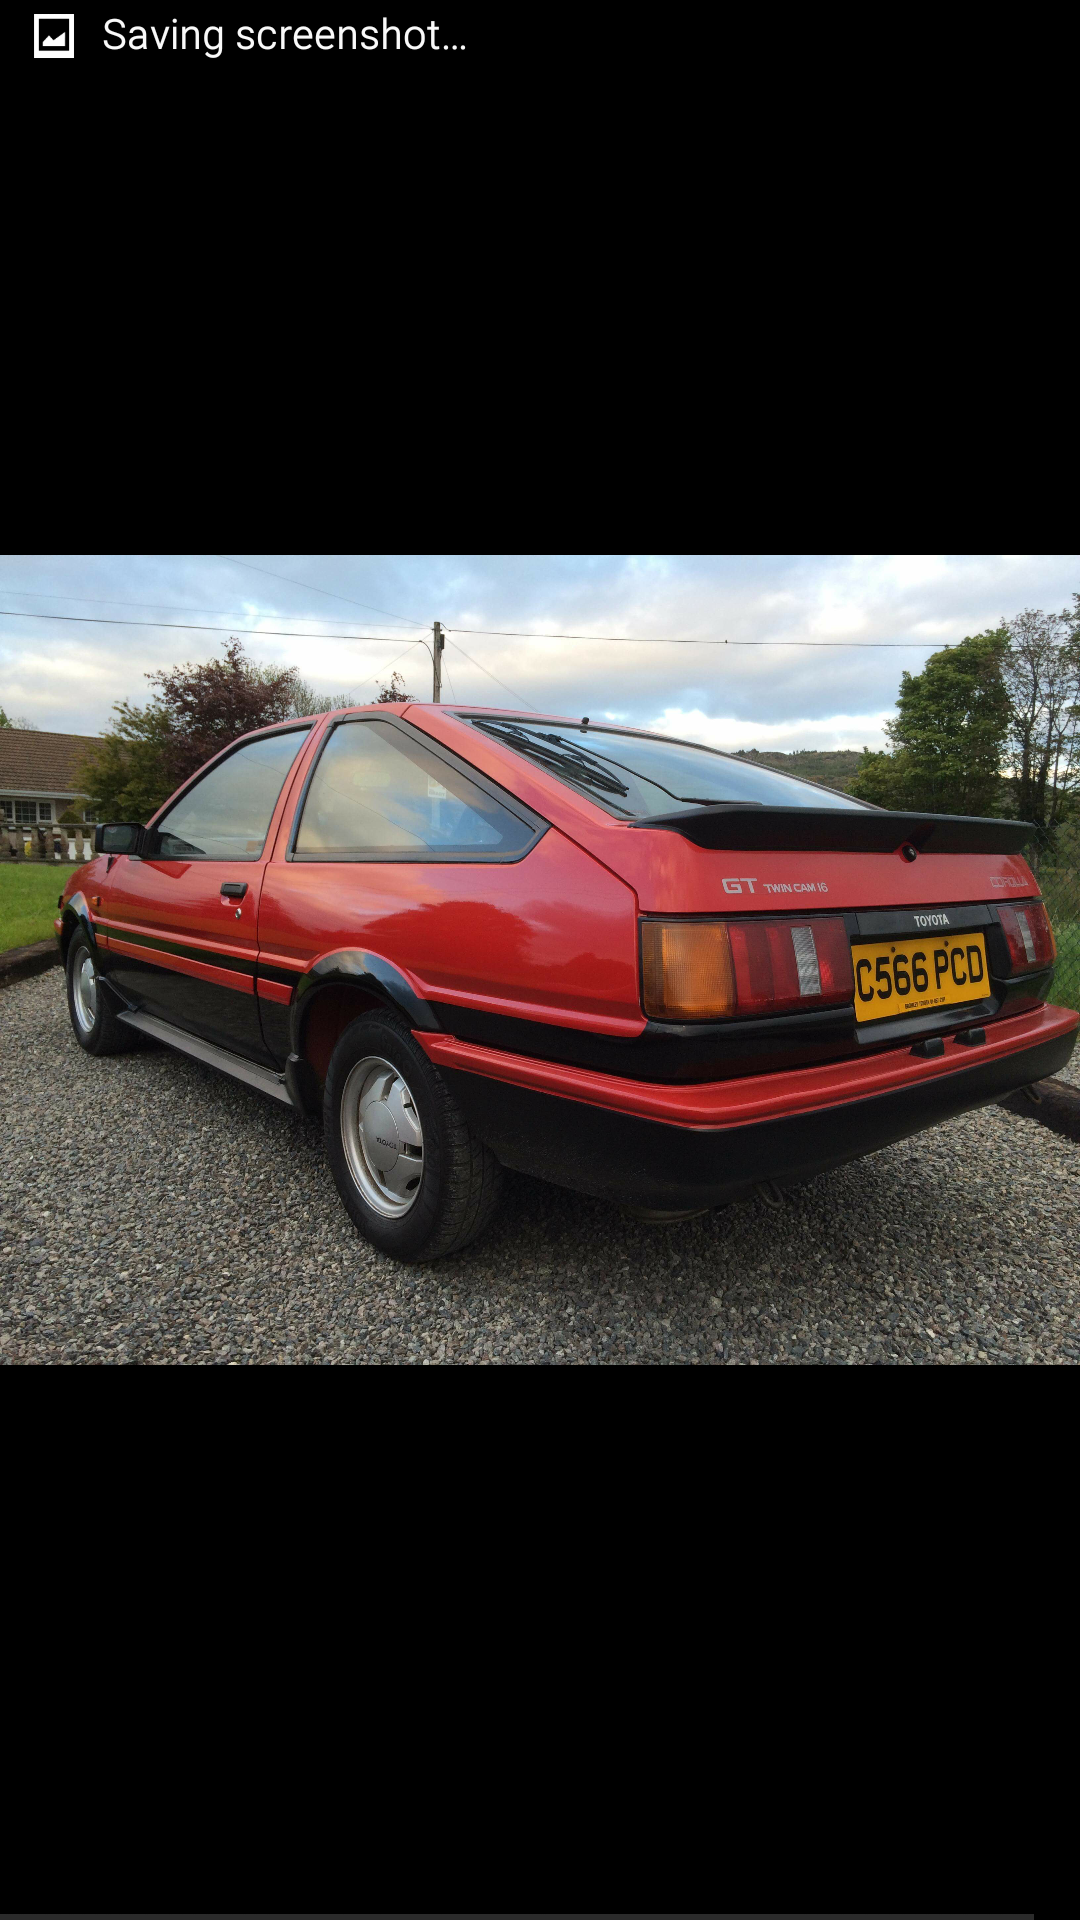 1985 Toyota Corolla gt coupe twincam ae86 For Sale (picture 5 of 6)